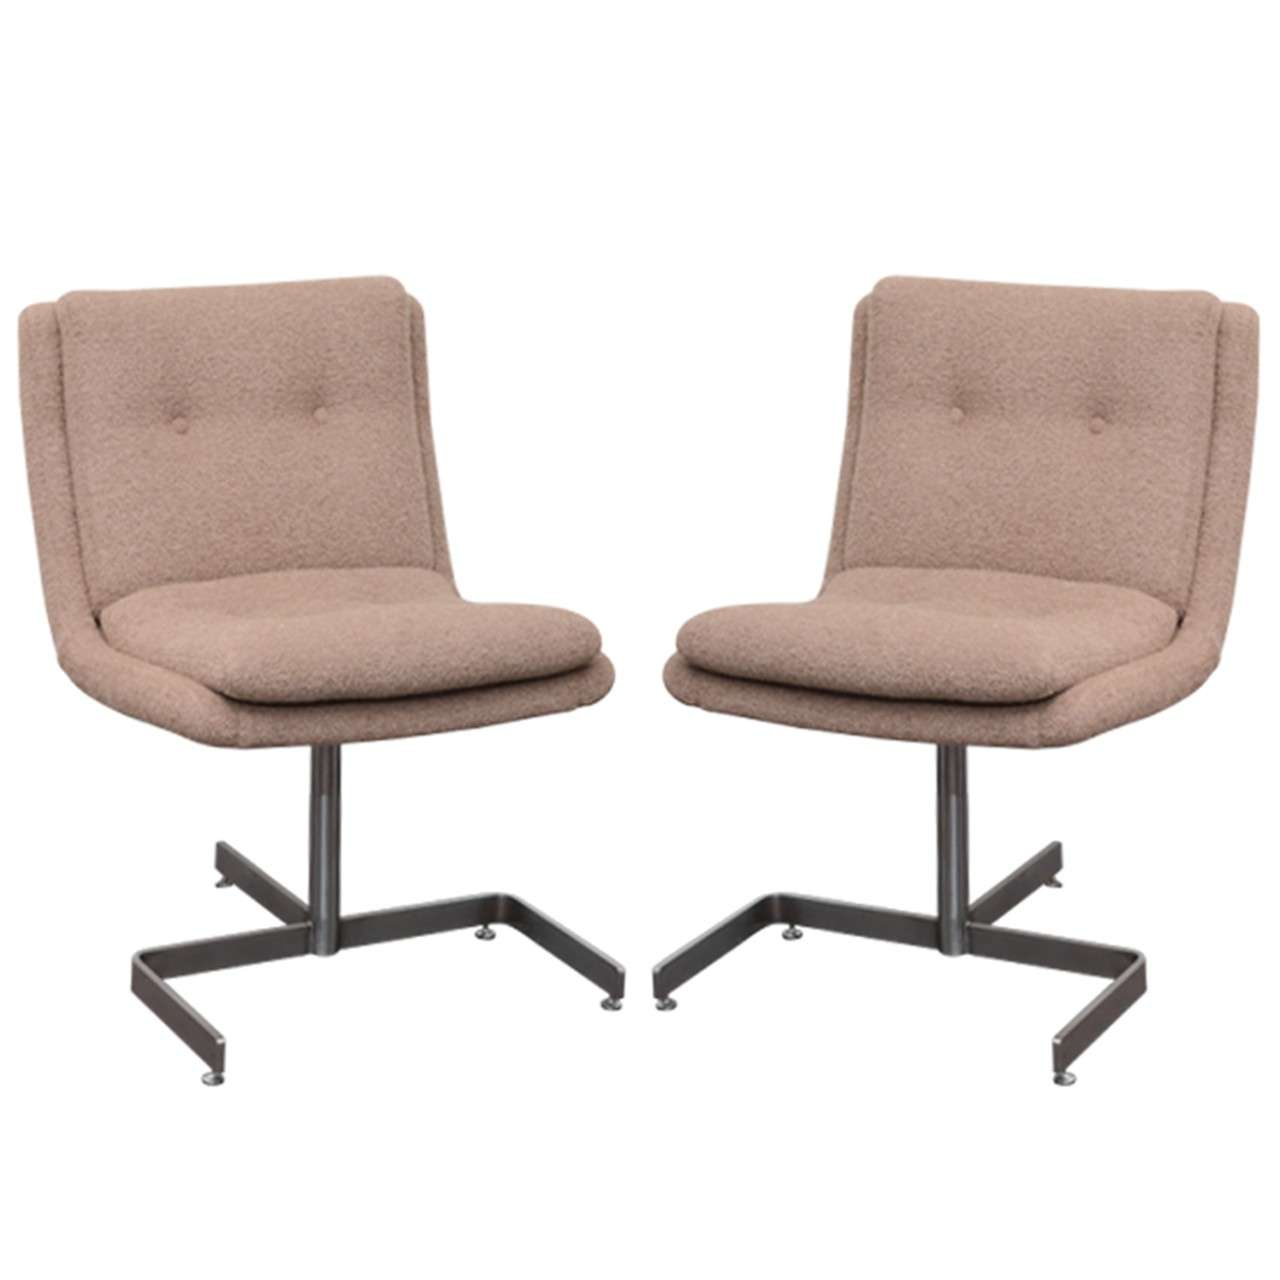 Pair of Lounge Chairs by Raphael For Sale